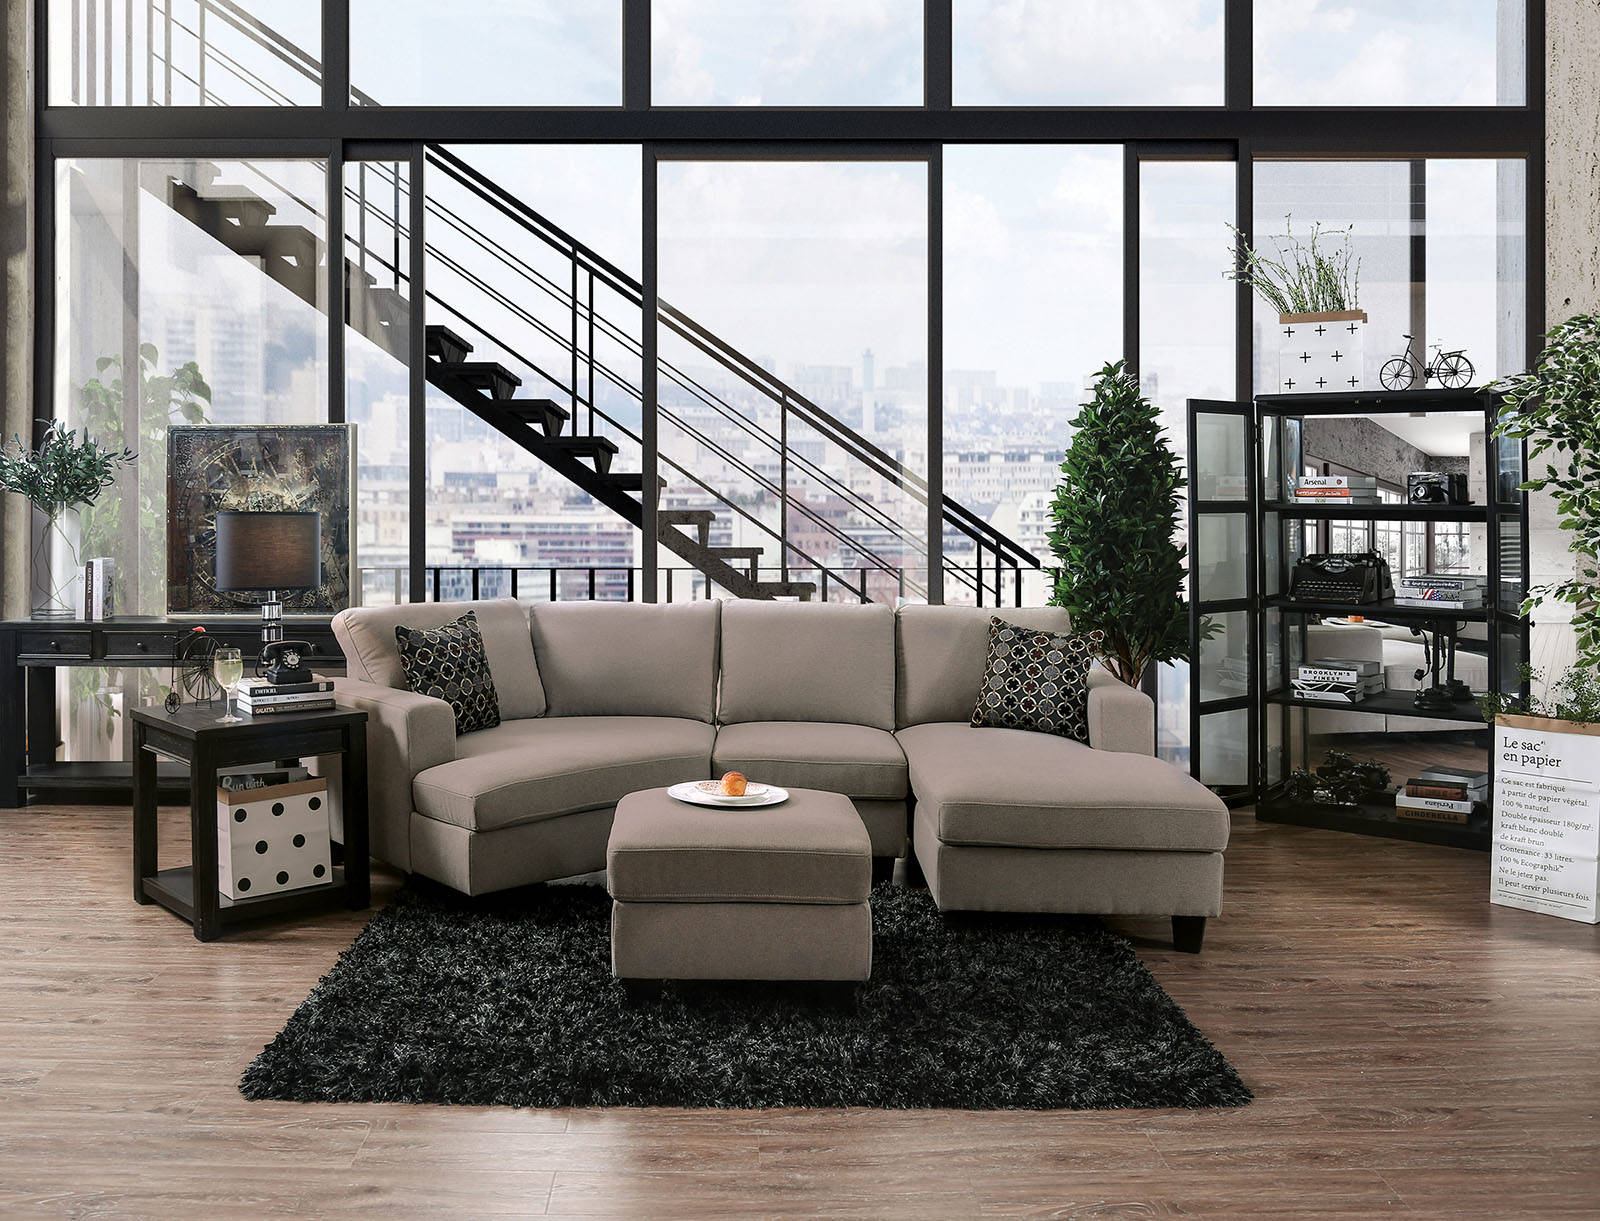 Remarkable Furniture Of America Traci Light Gray 4Pc Sectional With Ottoman Short Links Chair Design For Home Short Linksinfo